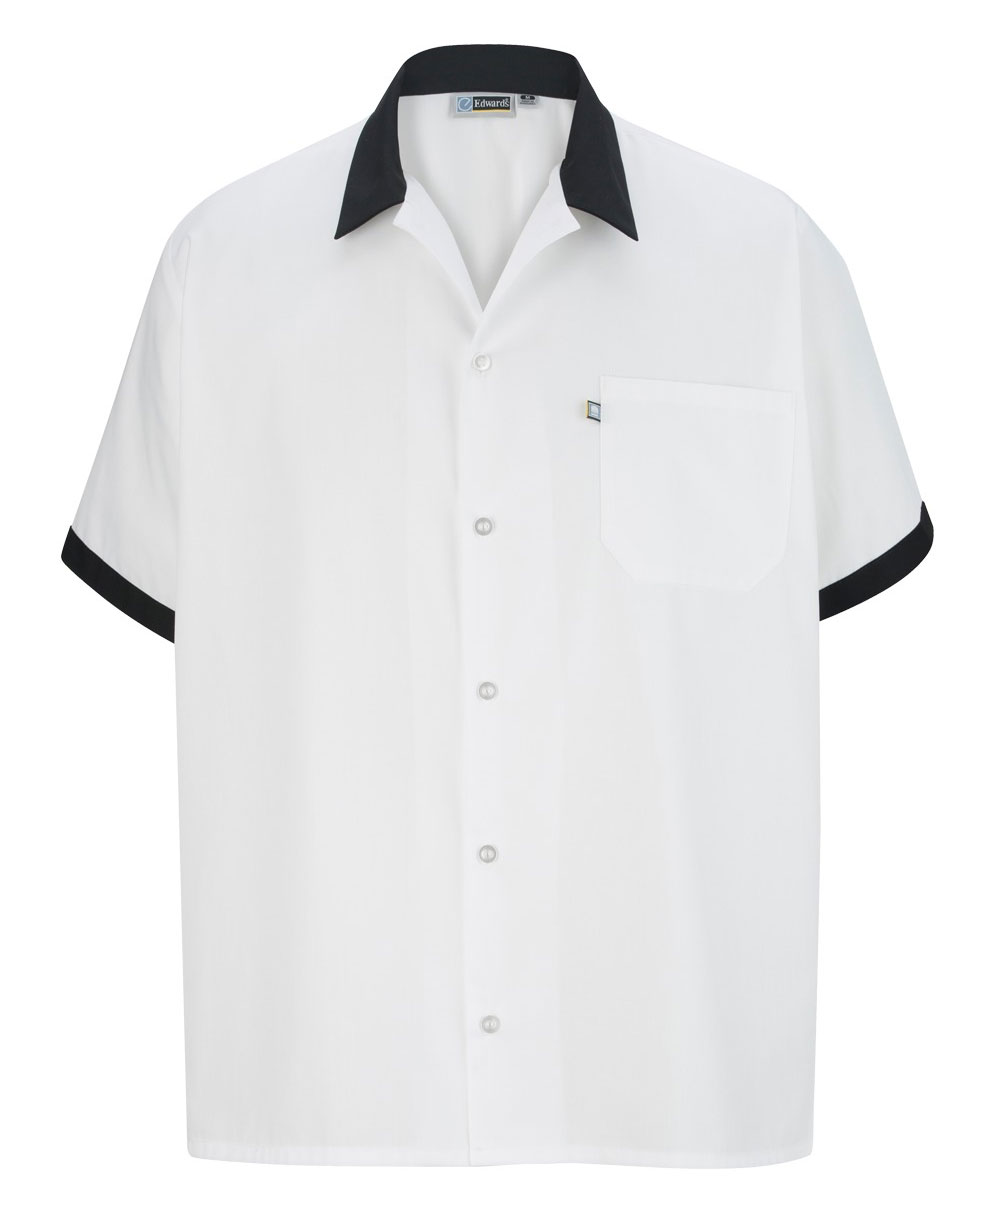 Unisex Bistro Cook Shirt by Edwards Garment